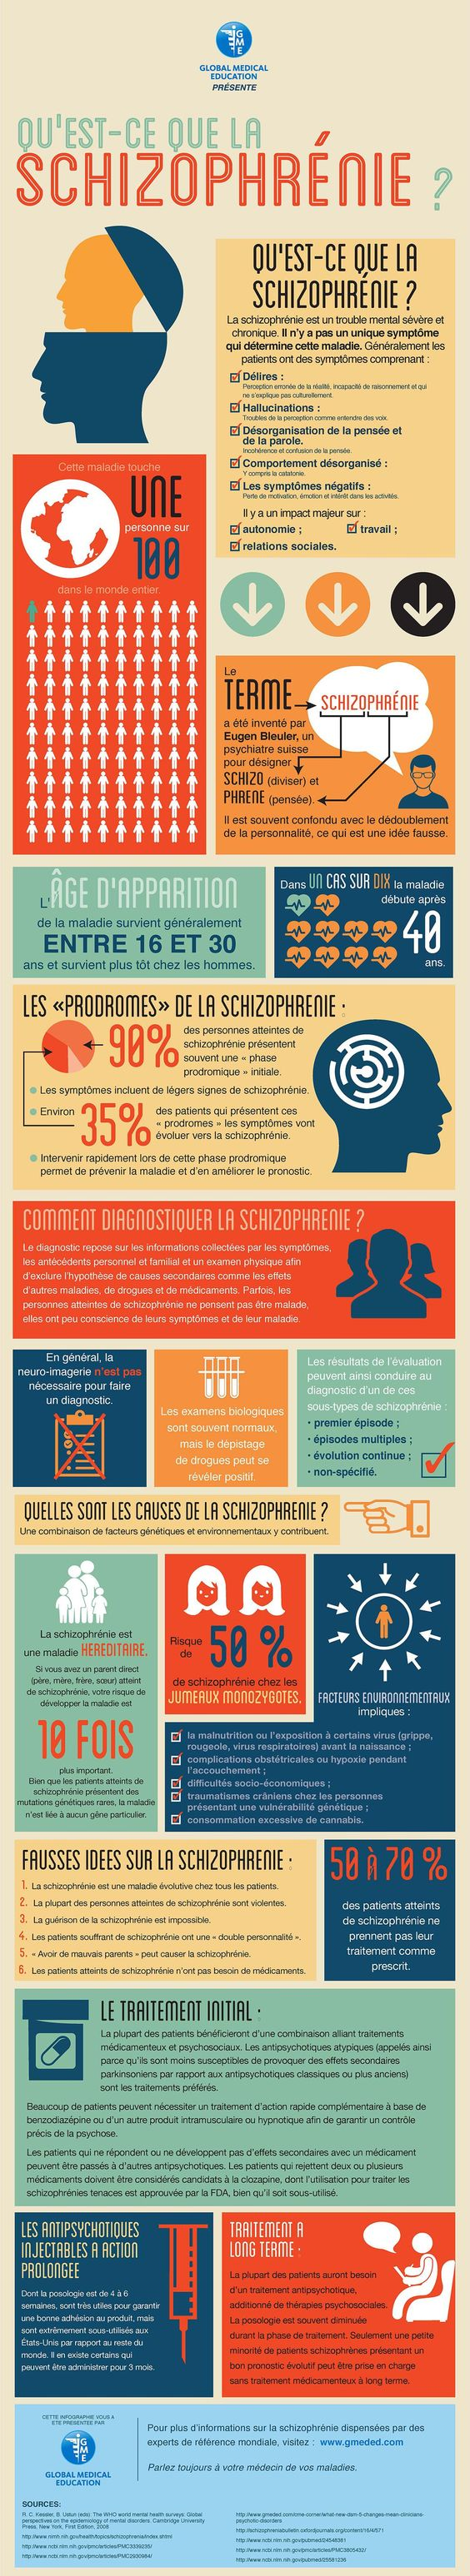 What Is Schizophrenia?   Global Medical Education